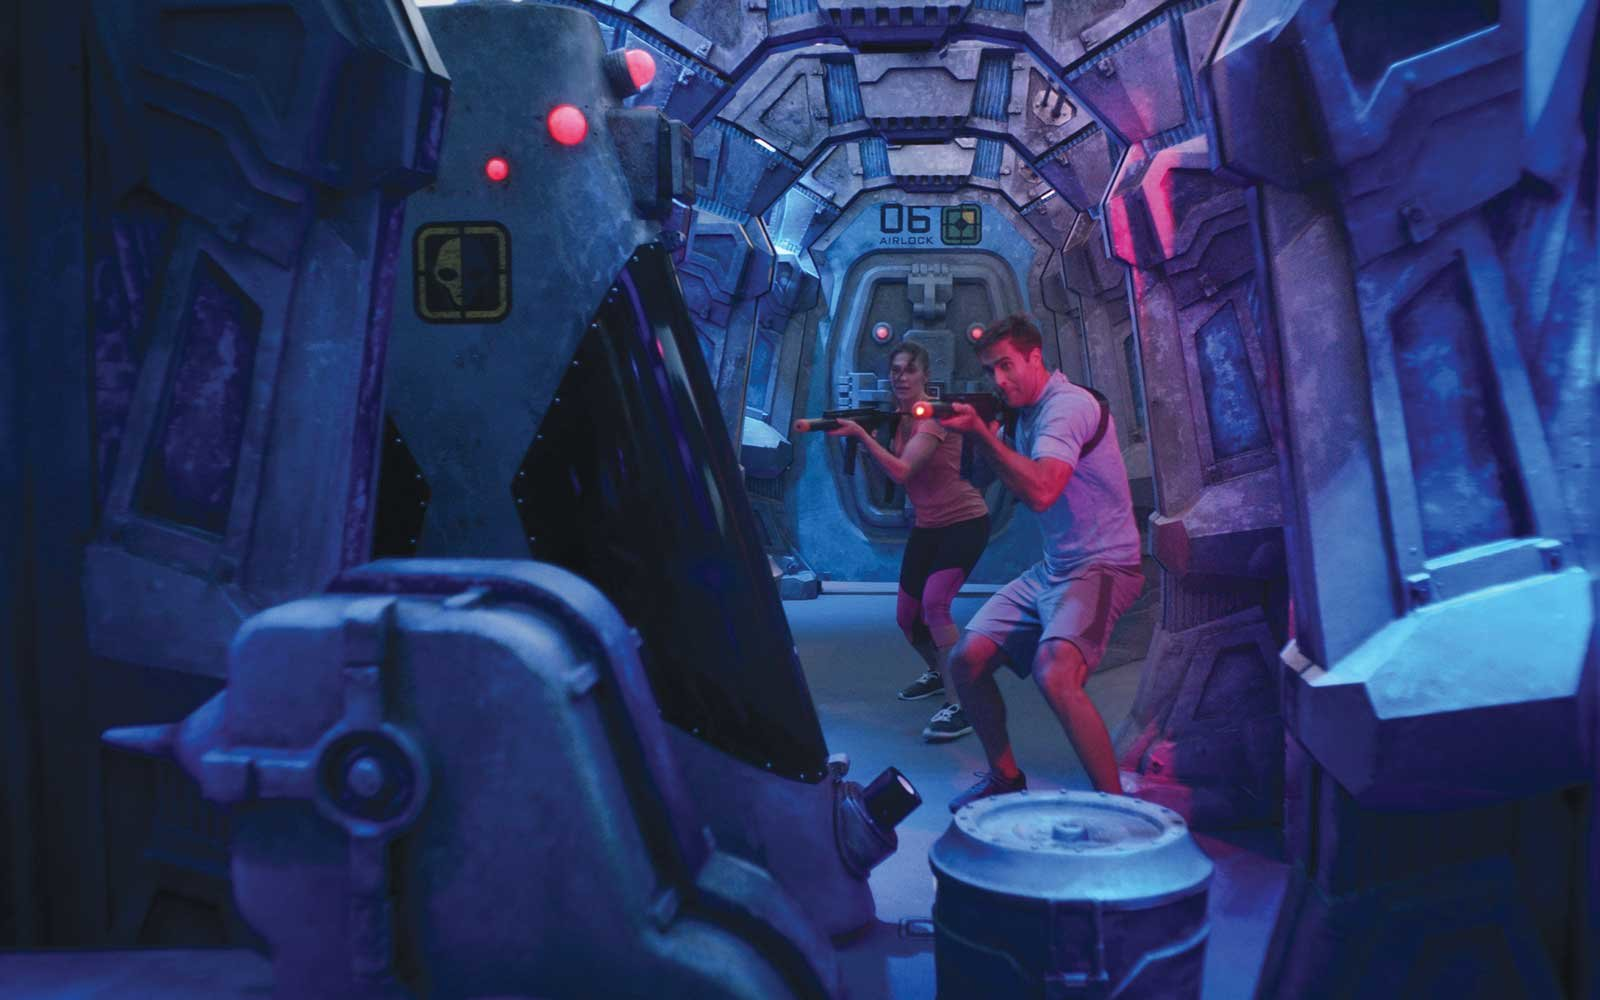 Laser Tag on board Norwegian Cruise Line's Bliss Ship